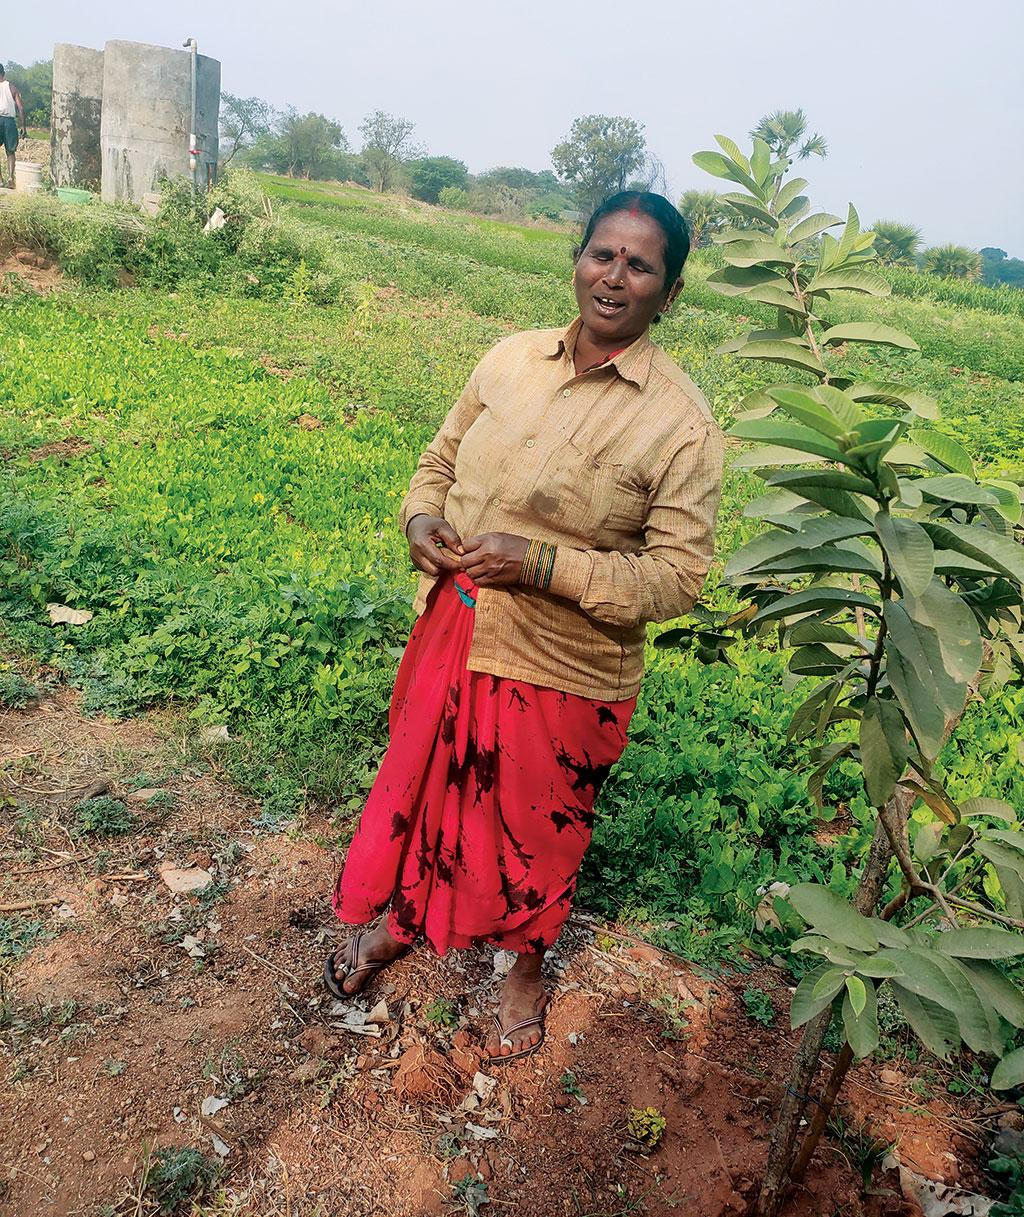 Residents of Manchal village in Telangana's Ranga Reddy district levelled their undulating lands and used the stones to form bunds around the field (Photograph: Shagun Kapil)